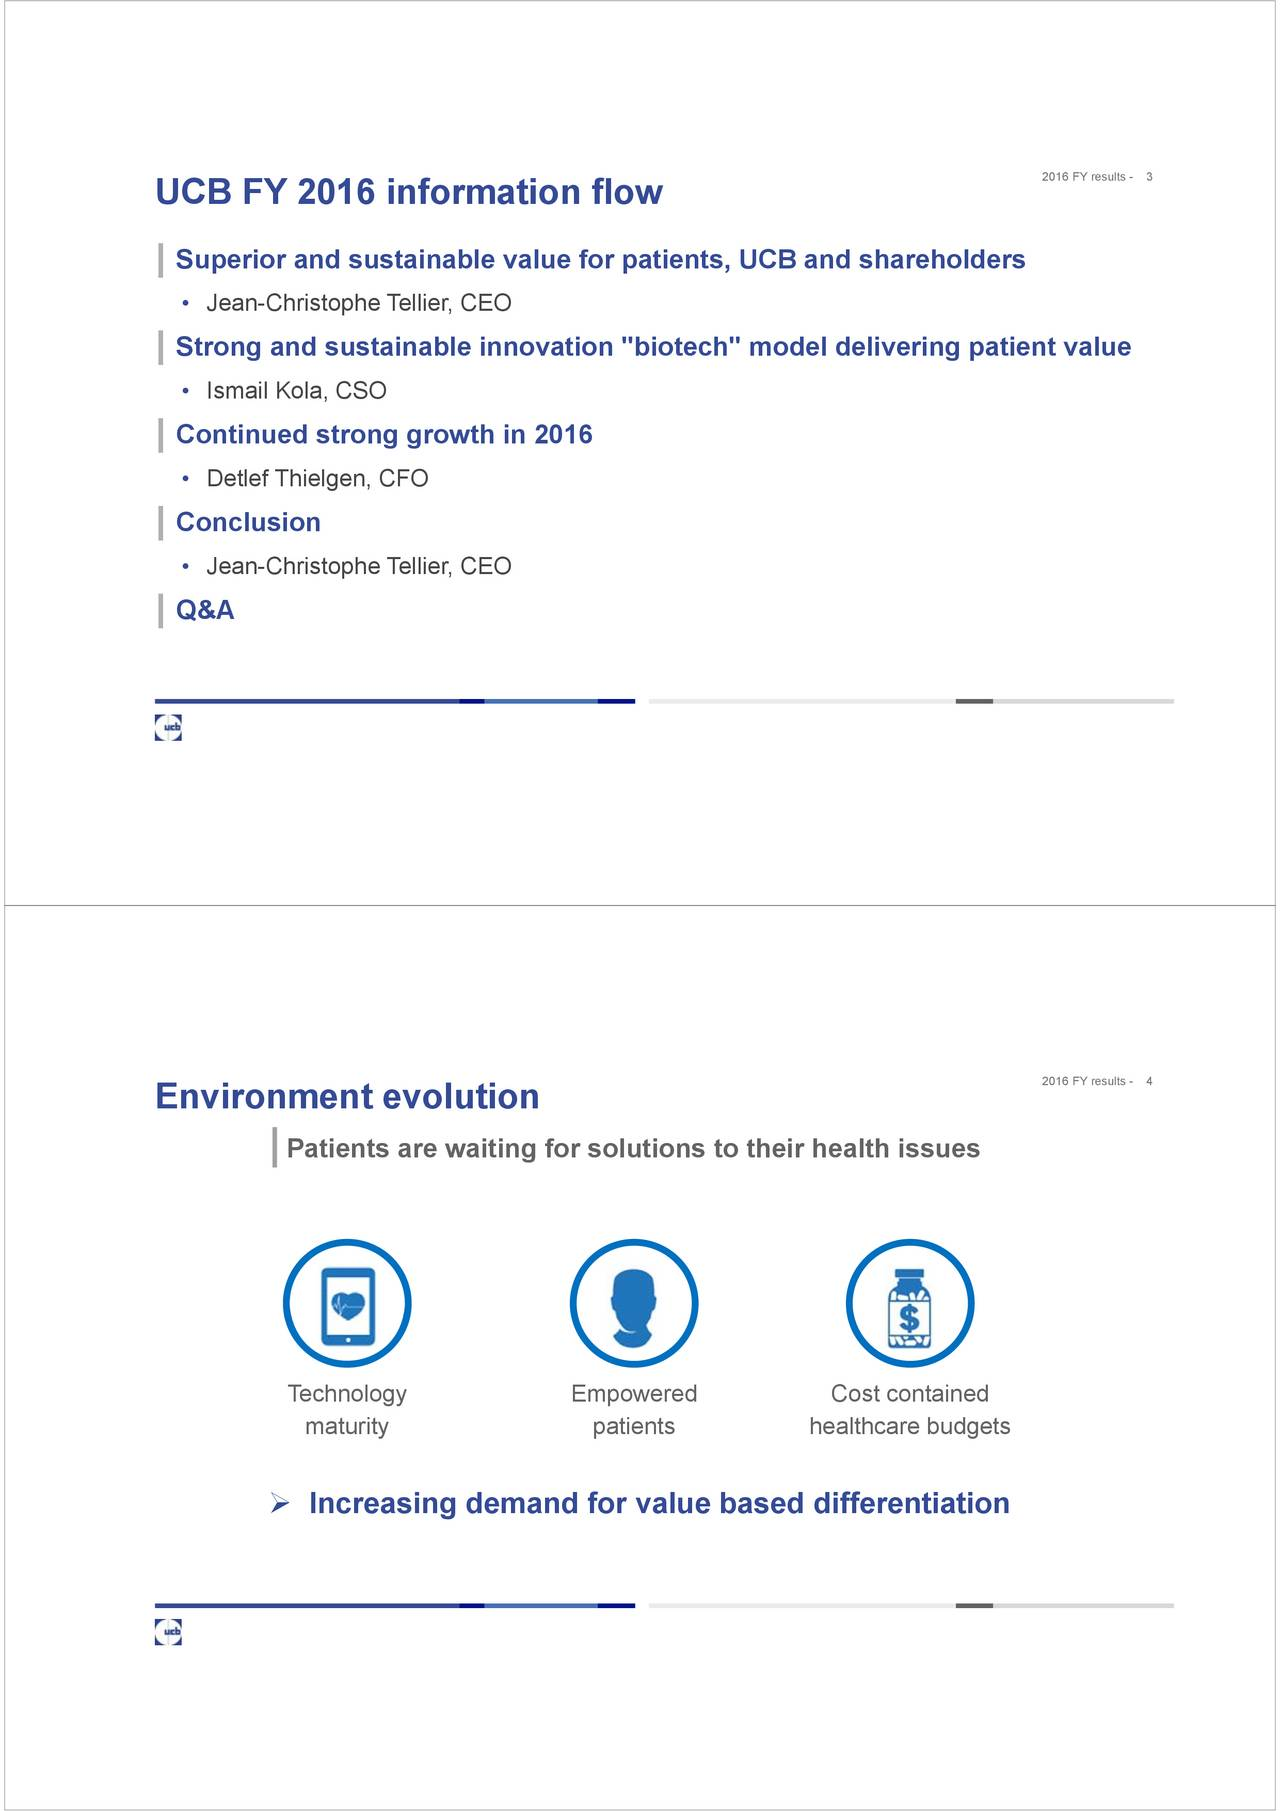 """Superior and sustainable value for patients, UCB and shareholders Jean-Christophe Tellier, CEO Strong and sustainable innovation """"biotech"""" model delivering patient value Ismail Kola, CSO Continued strong growth in 2016 Detlef Thielgen, CFO Conclusion Jean-Christophe Tellier, CEO Q&A Environment evolution 2016 FY r4sults - Patients are waiting for solutions to their health issues Technology Empowered Cost contained maturity patients healthcare budgets Increasing demand for value based differentiation"""